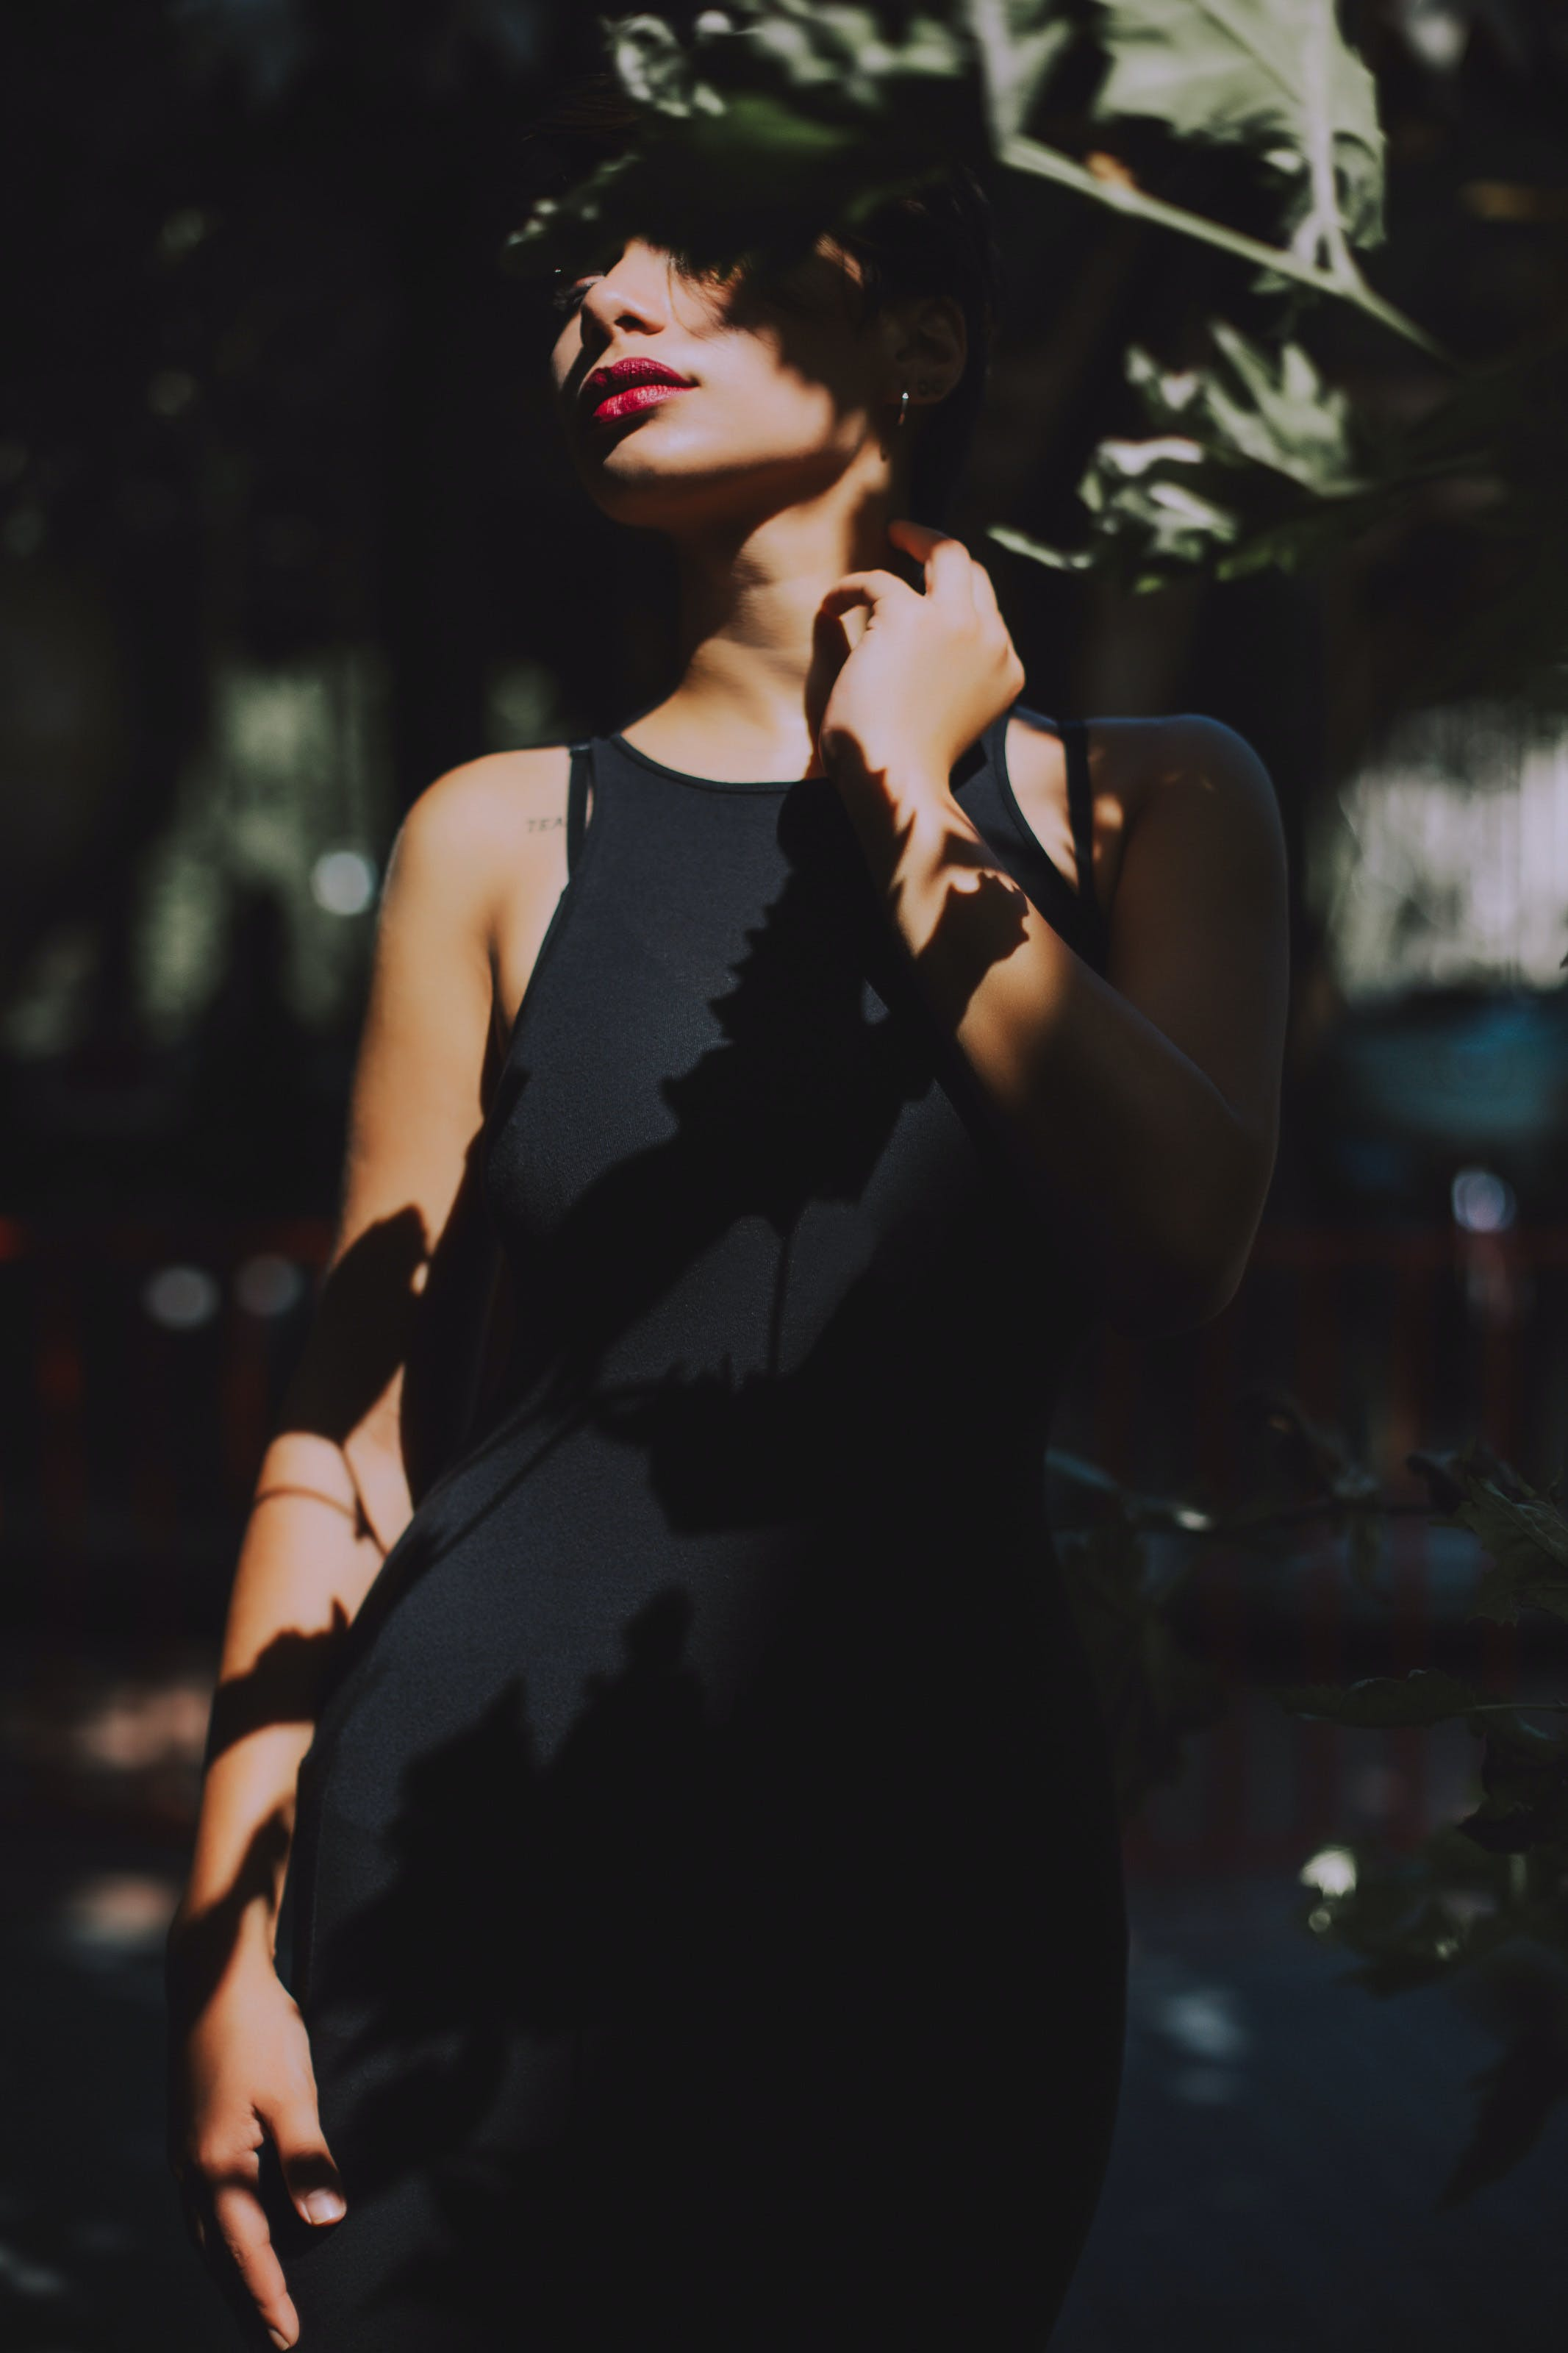 Woman Wearing Black Sleeveless Top Dress Under the Tree